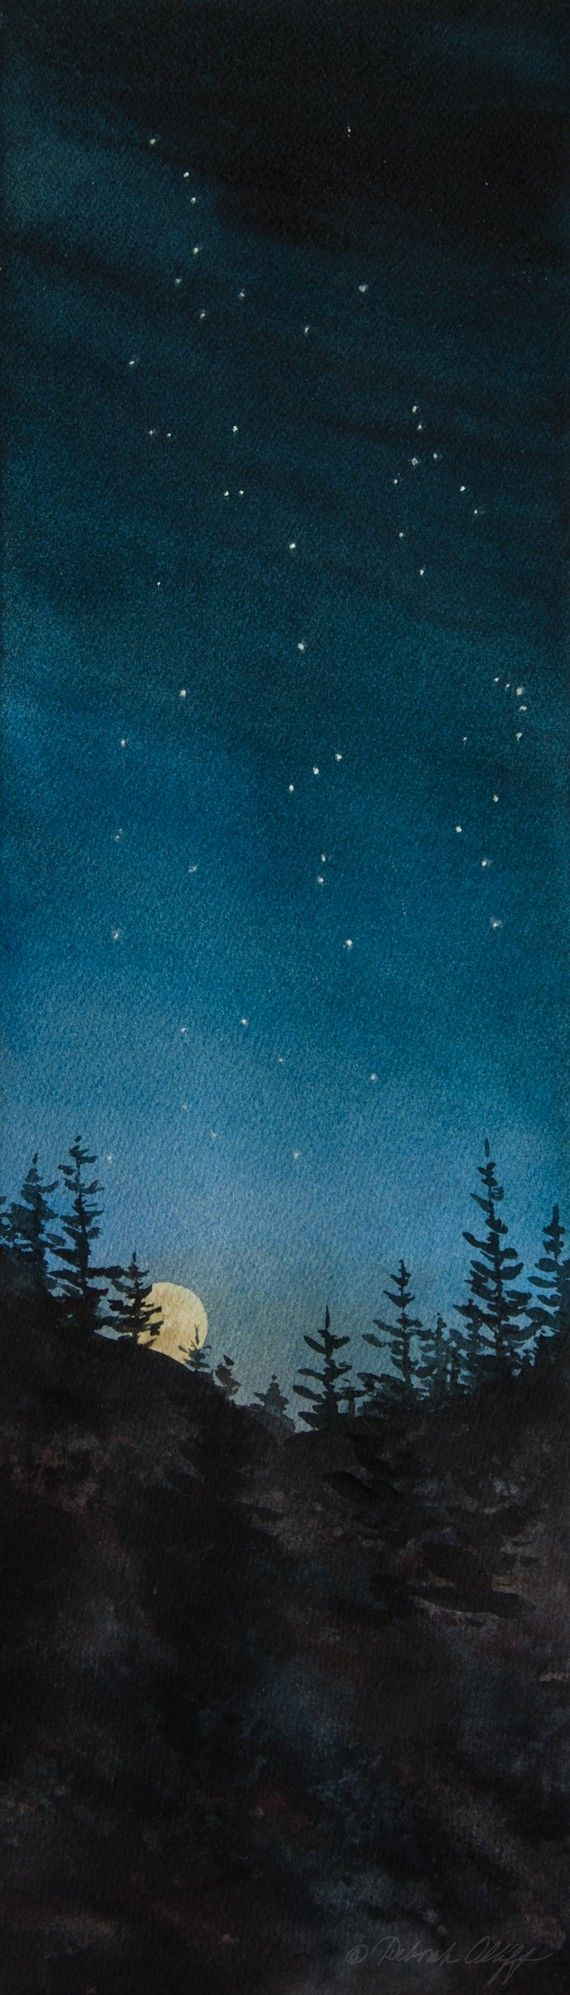 Constellations Watercolor Print Night Sky Baby by OlliffStudio